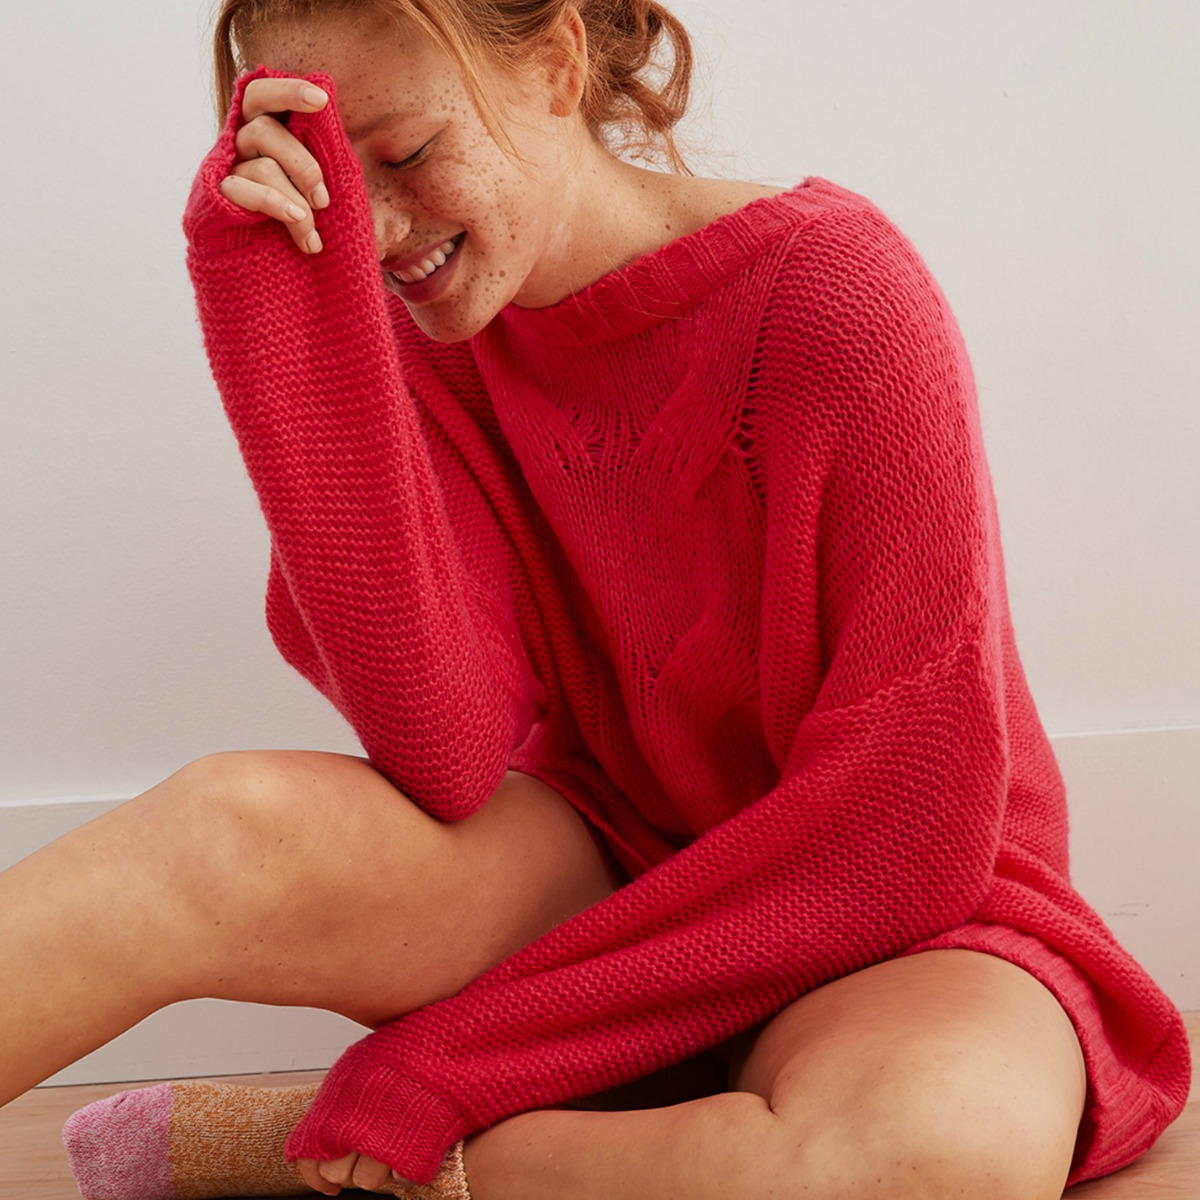 Woman wearing a red oversized cable sweater